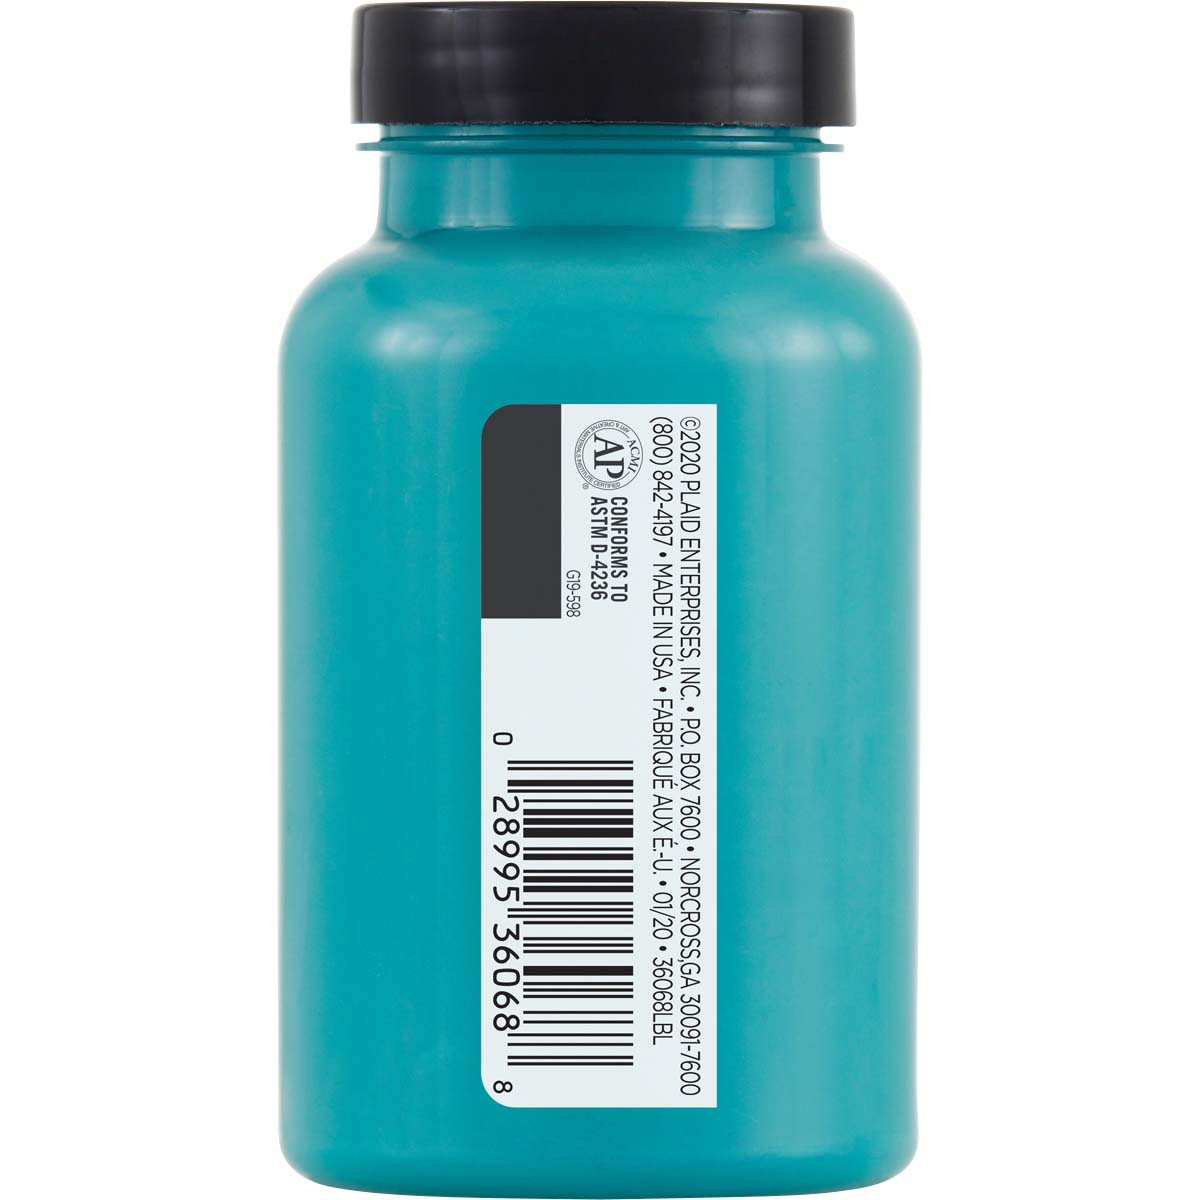 FolkArt ® One Décor Paint™ - Arctic Teal, 8 oz. - 36068